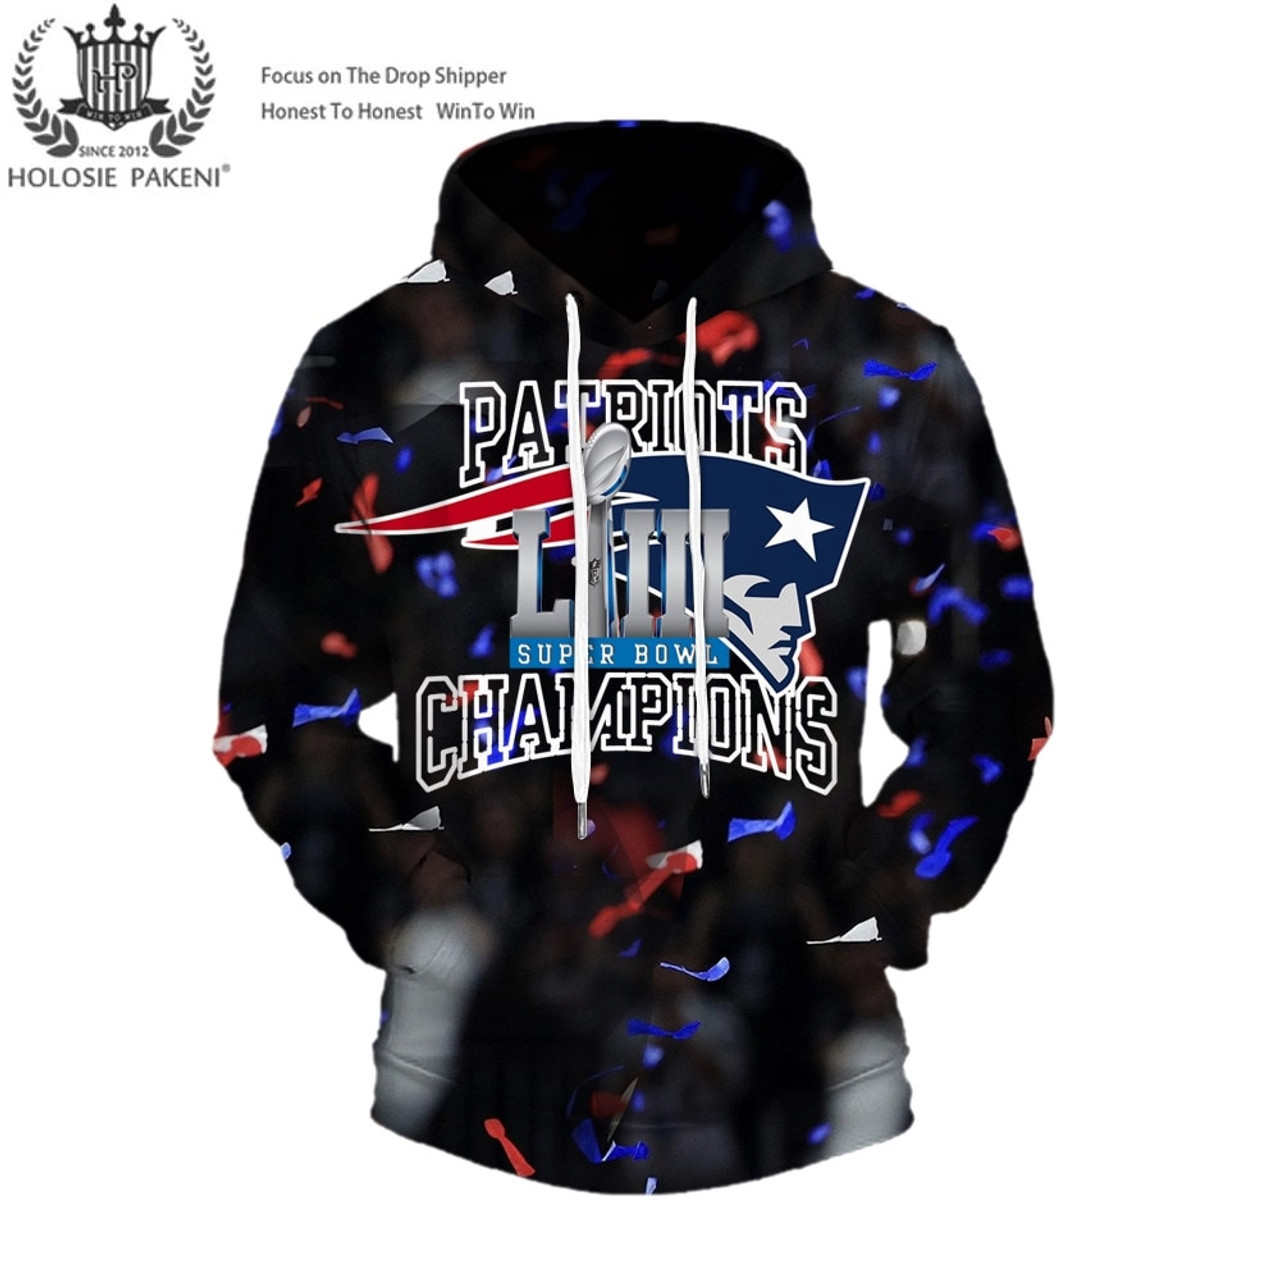 reputable site a8508 64ad2 **(OFFICIAL-N.F.L.NEW-ENGLAND-PATRIOTS-SUPER-BOWL-LIII-CHAMPIONS-CUSTOM-PREMIUM-PULLOVER-HOODIES/SIX-TIMES-SUPER-BOWL-CHAMPION-WINNERS/NEW-CUSTOM-3D-G...